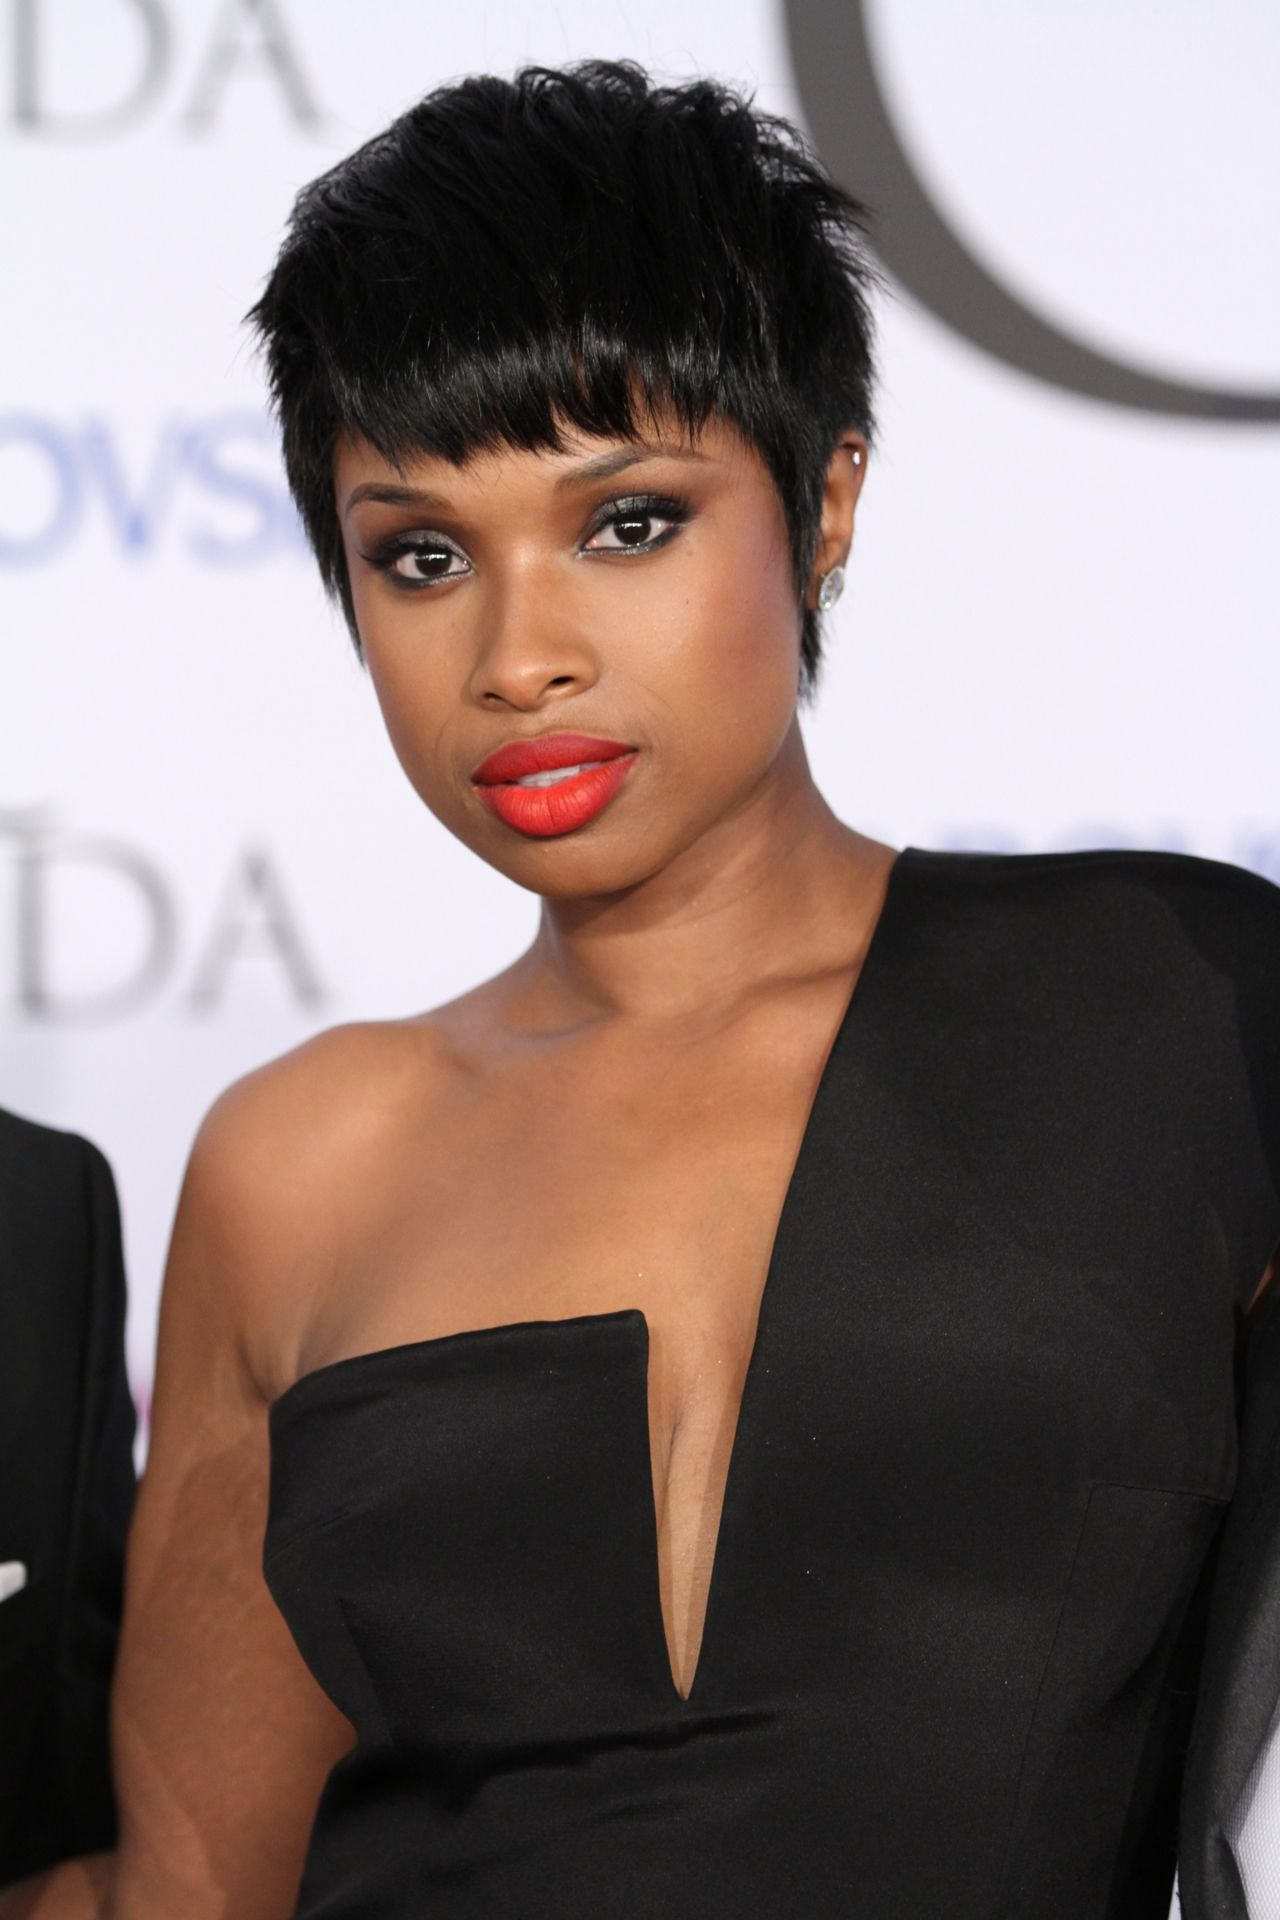 jennifer hudson mp3jennifer hudson one night only, jennifer hudson remember me, jennifer hudson golden slumbers, jennifer hudson песни, jennifer hudson feeling good, jennifer hudson remember me перевод, jennifer hudson spotlight, jennifer hudson instagram, jennifer hudson remember me скачать, jennifer hudson mp3, jennifer hudson carry that weight, jennifer hudson all dressed in love, jennifer hudson кинопоиск, jennifer hudson golden slumbers перевод, jennifer hudson биография, jennifer hudson spotlight скачать, jennifer hudson golden slumbers скачать, jennifer hudson sing, jennifer hudson скачать, jennifer hudson still love you